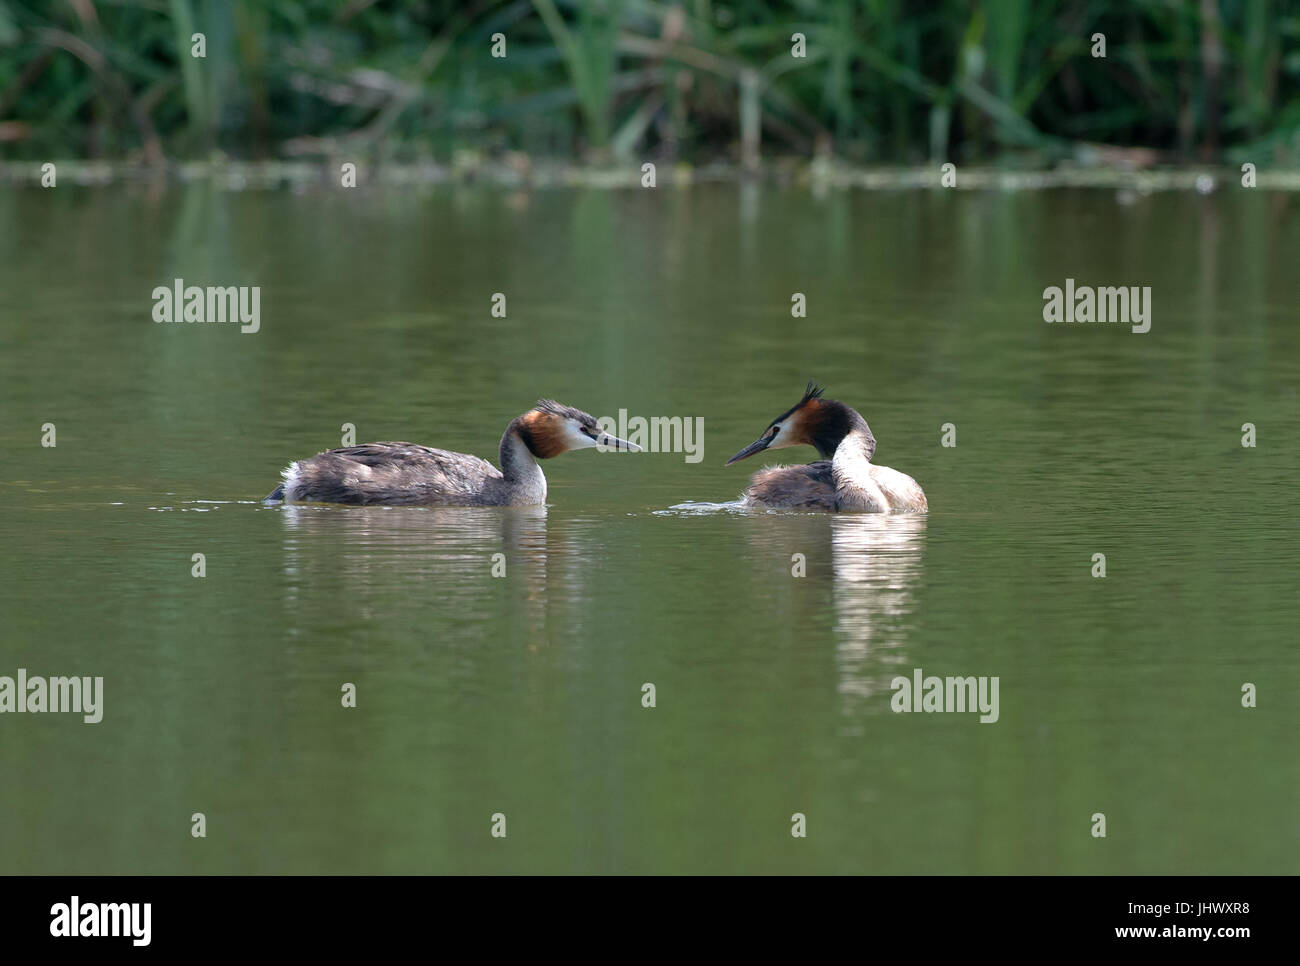 Pair of Great Crested Grebes-Podiceps cristatus. Uk - Stock Image